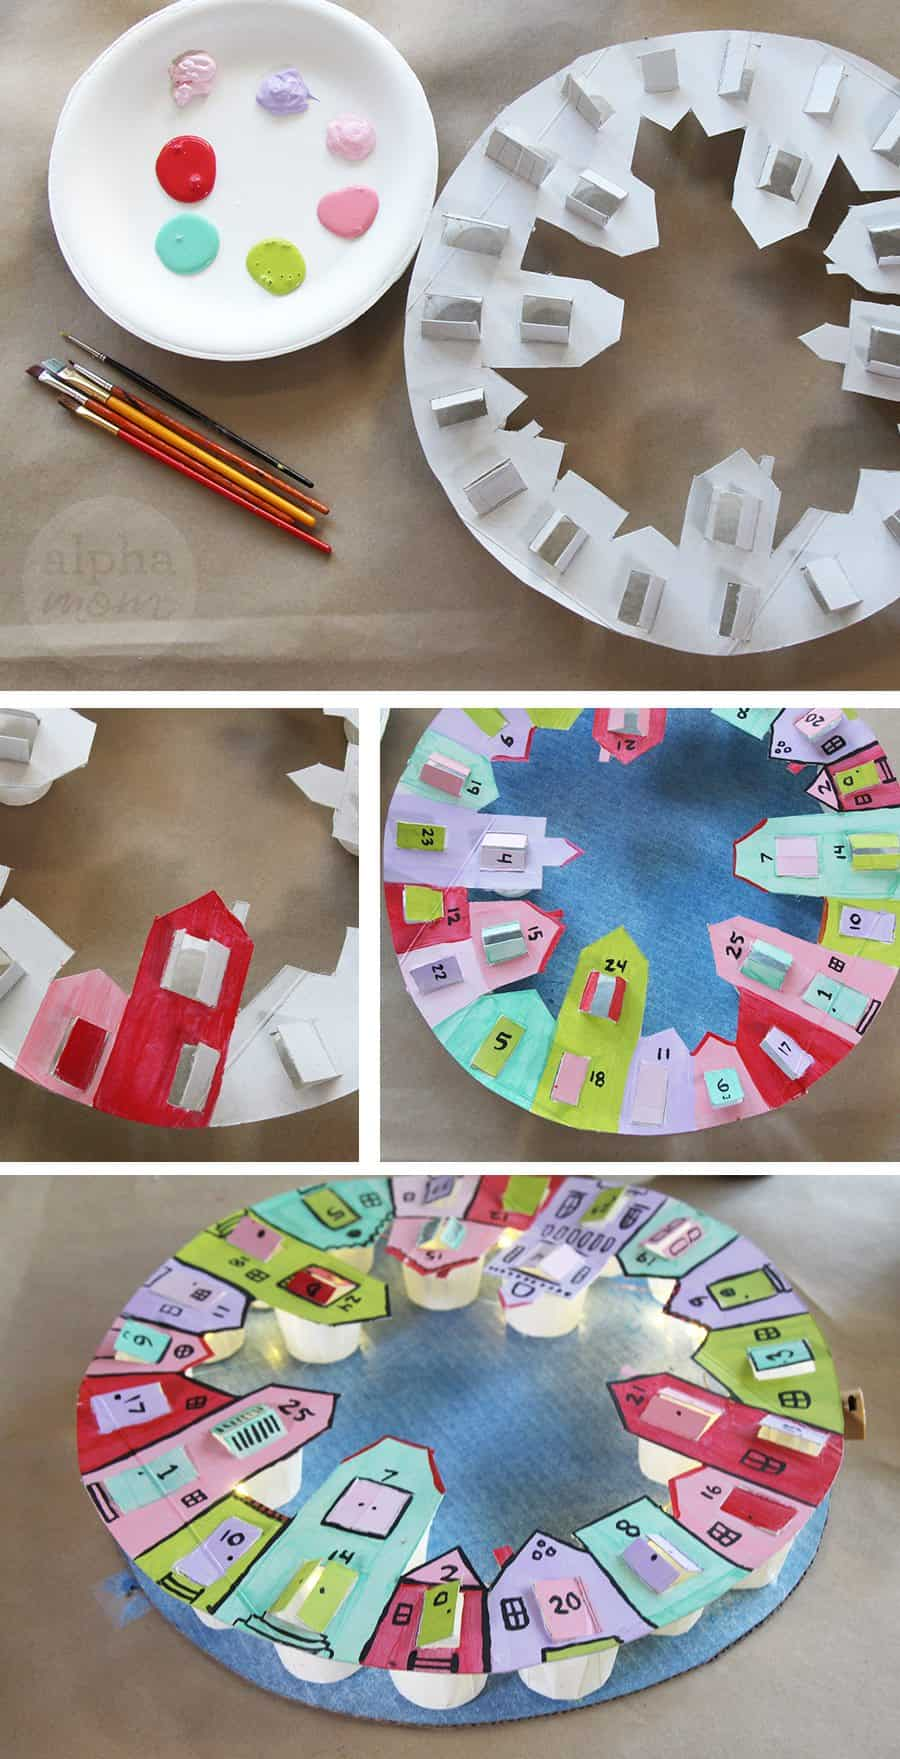 DIY Advent Calendar Wreath for Kids (painting) by Brenda Ponnay for Alpahmom.com